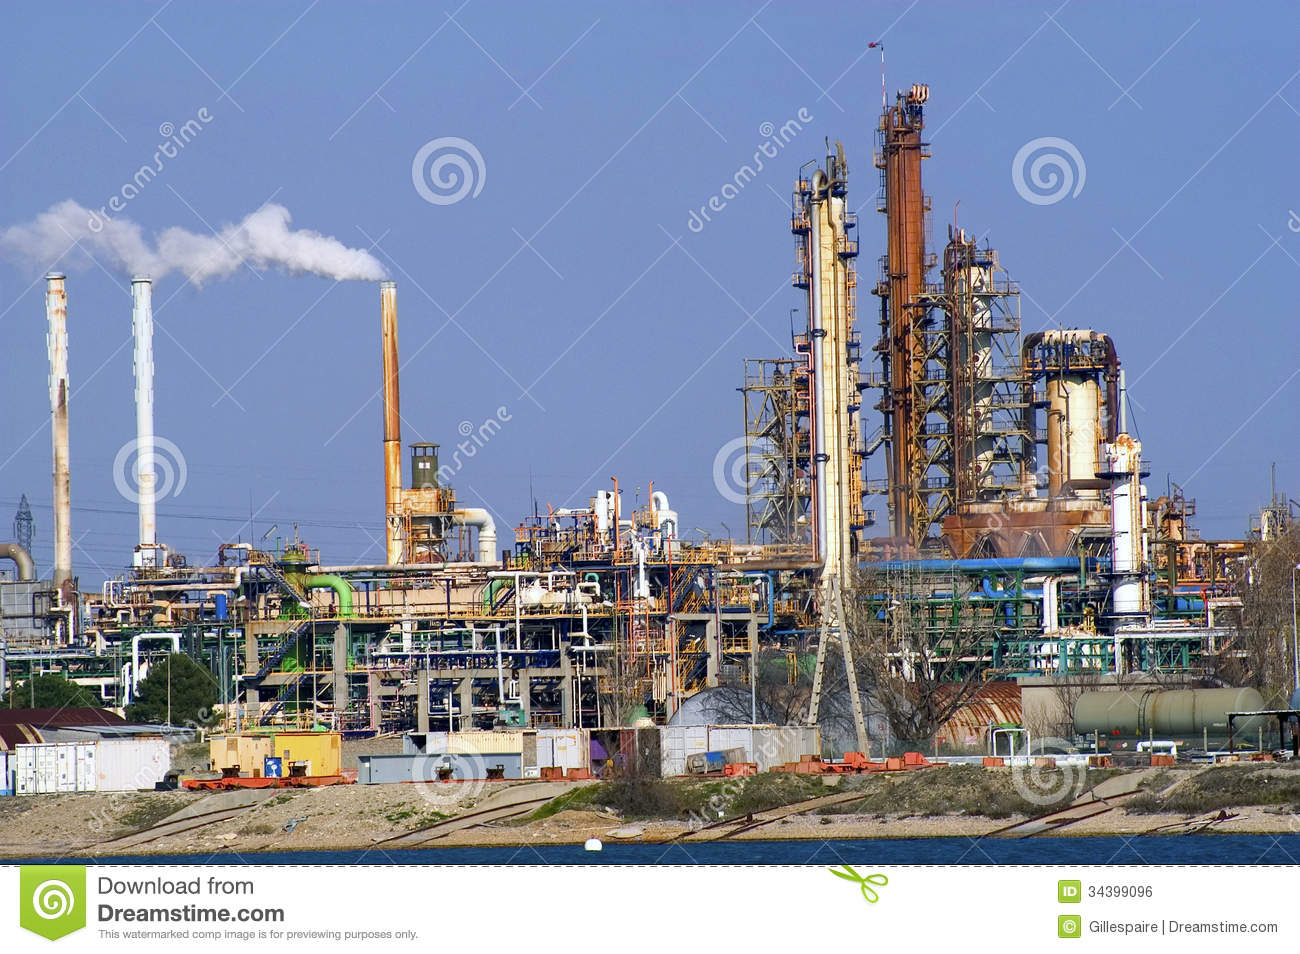 Industry Royalty Free Stock Image - Image: 34399096